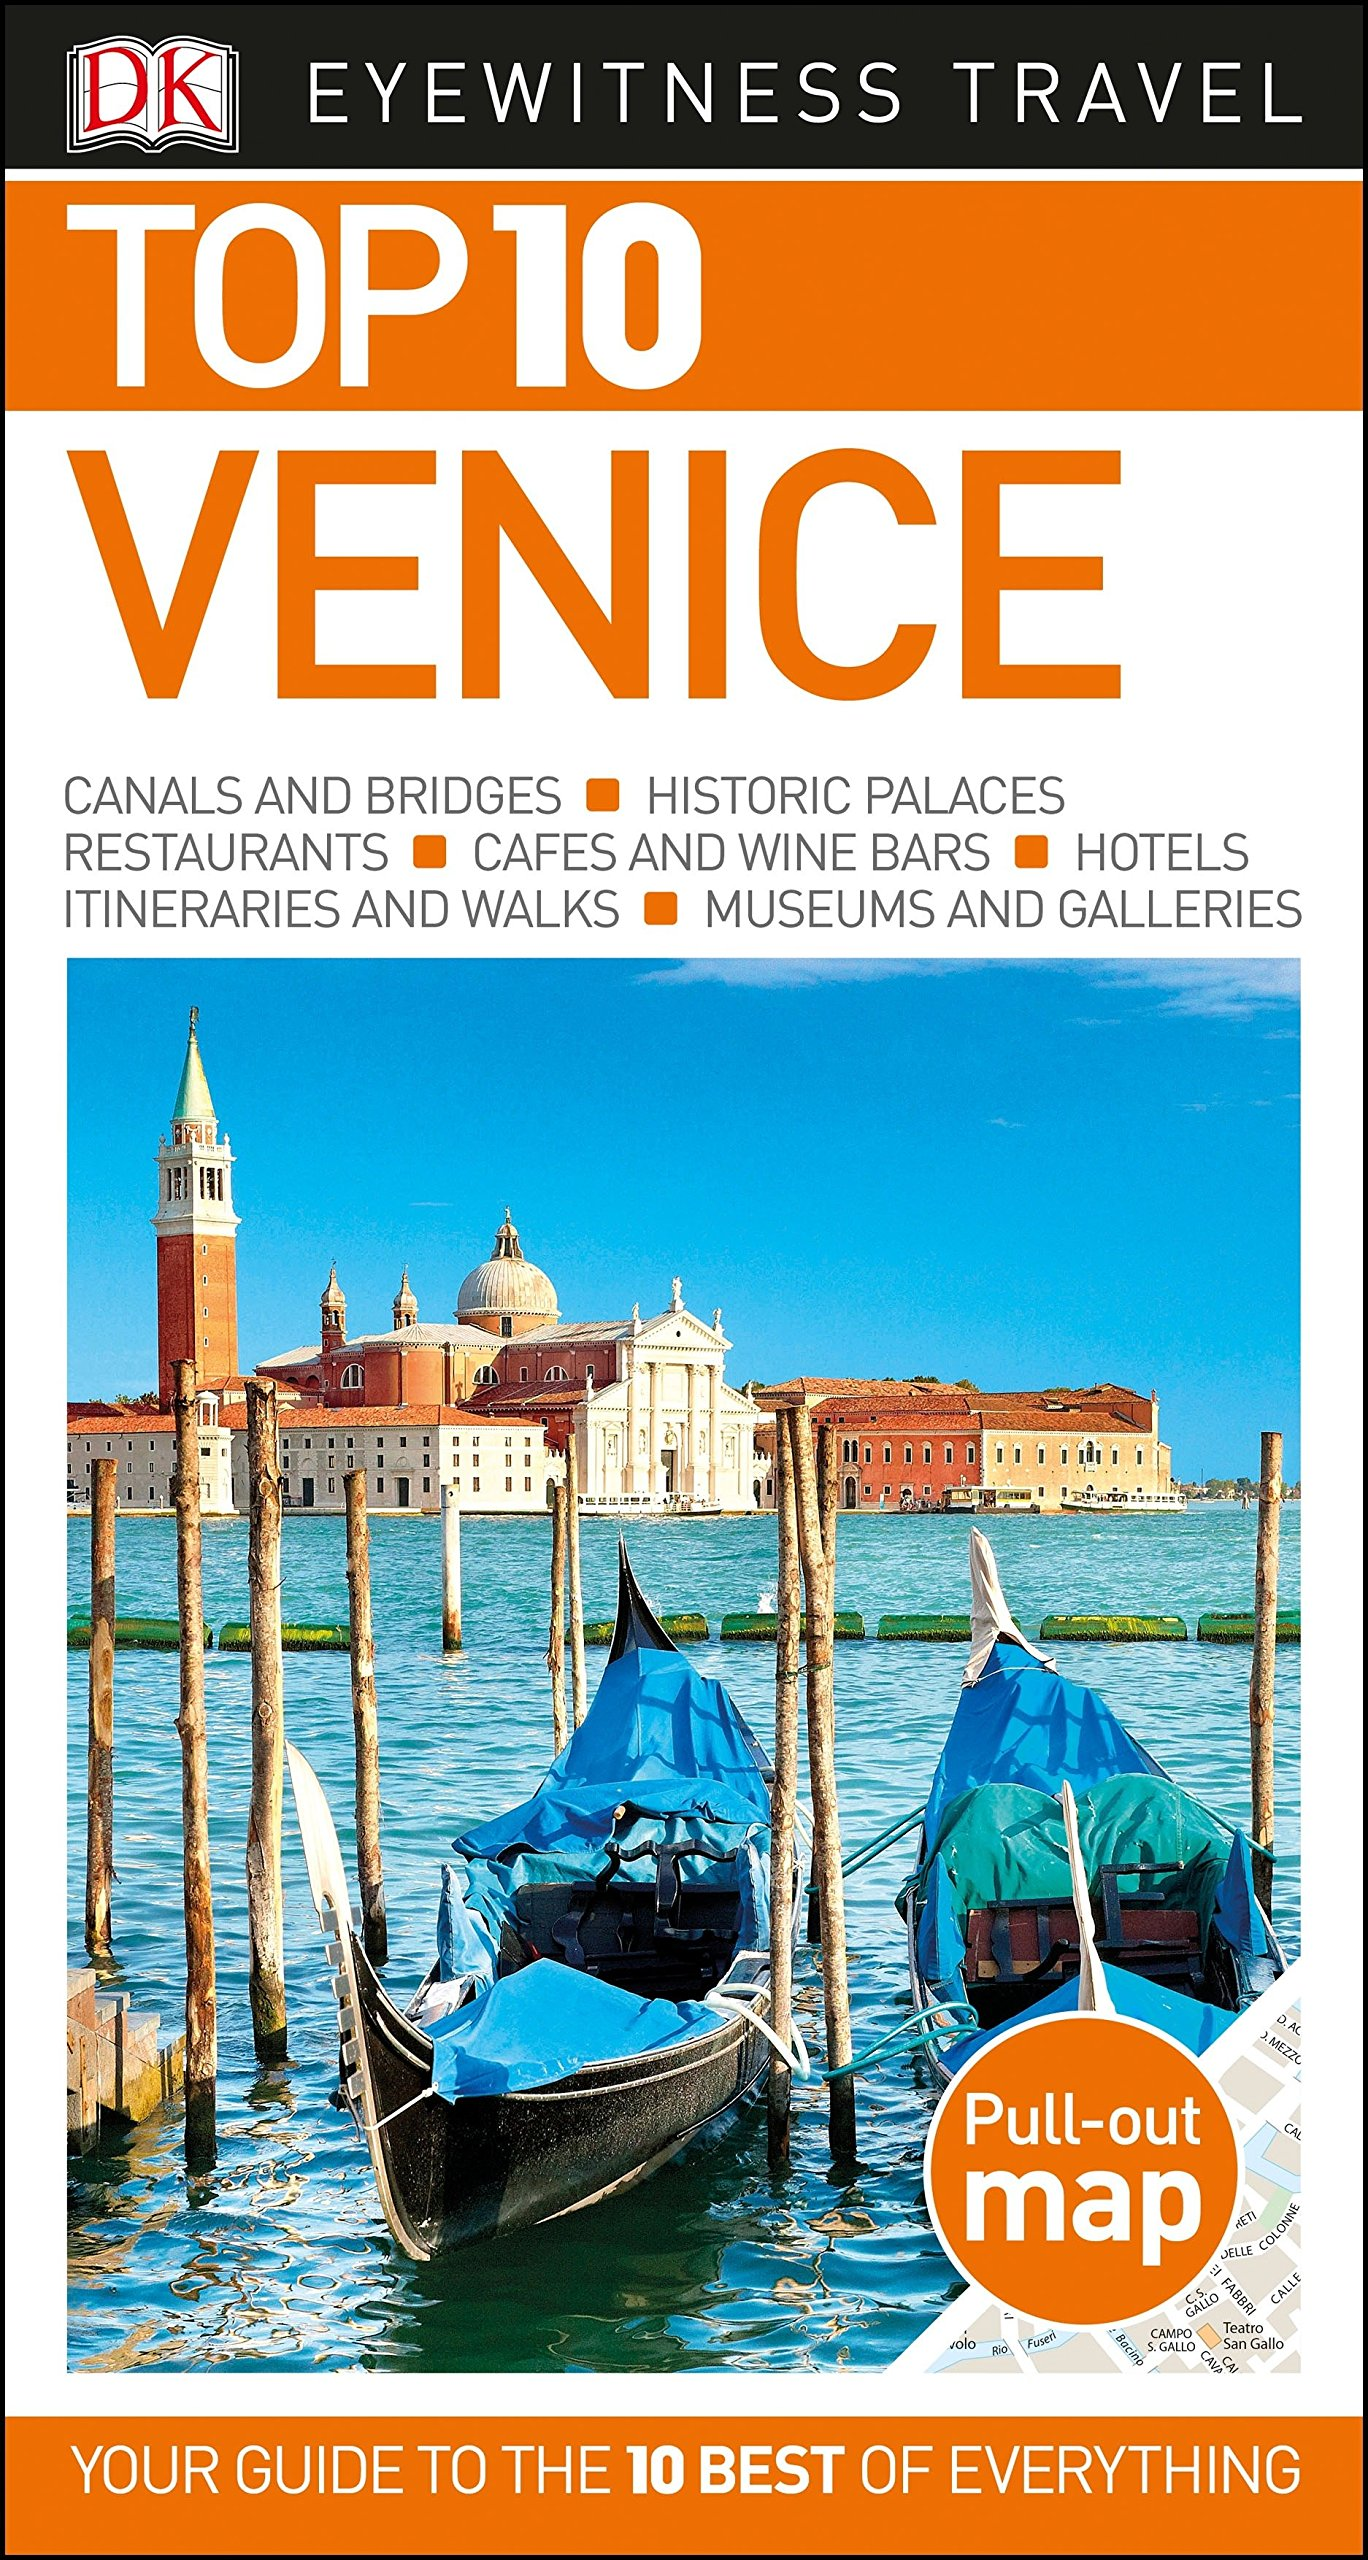 Top 10 Venice (Eyewitness Top 10 Travel Guide) by DK Eyewitness Travel